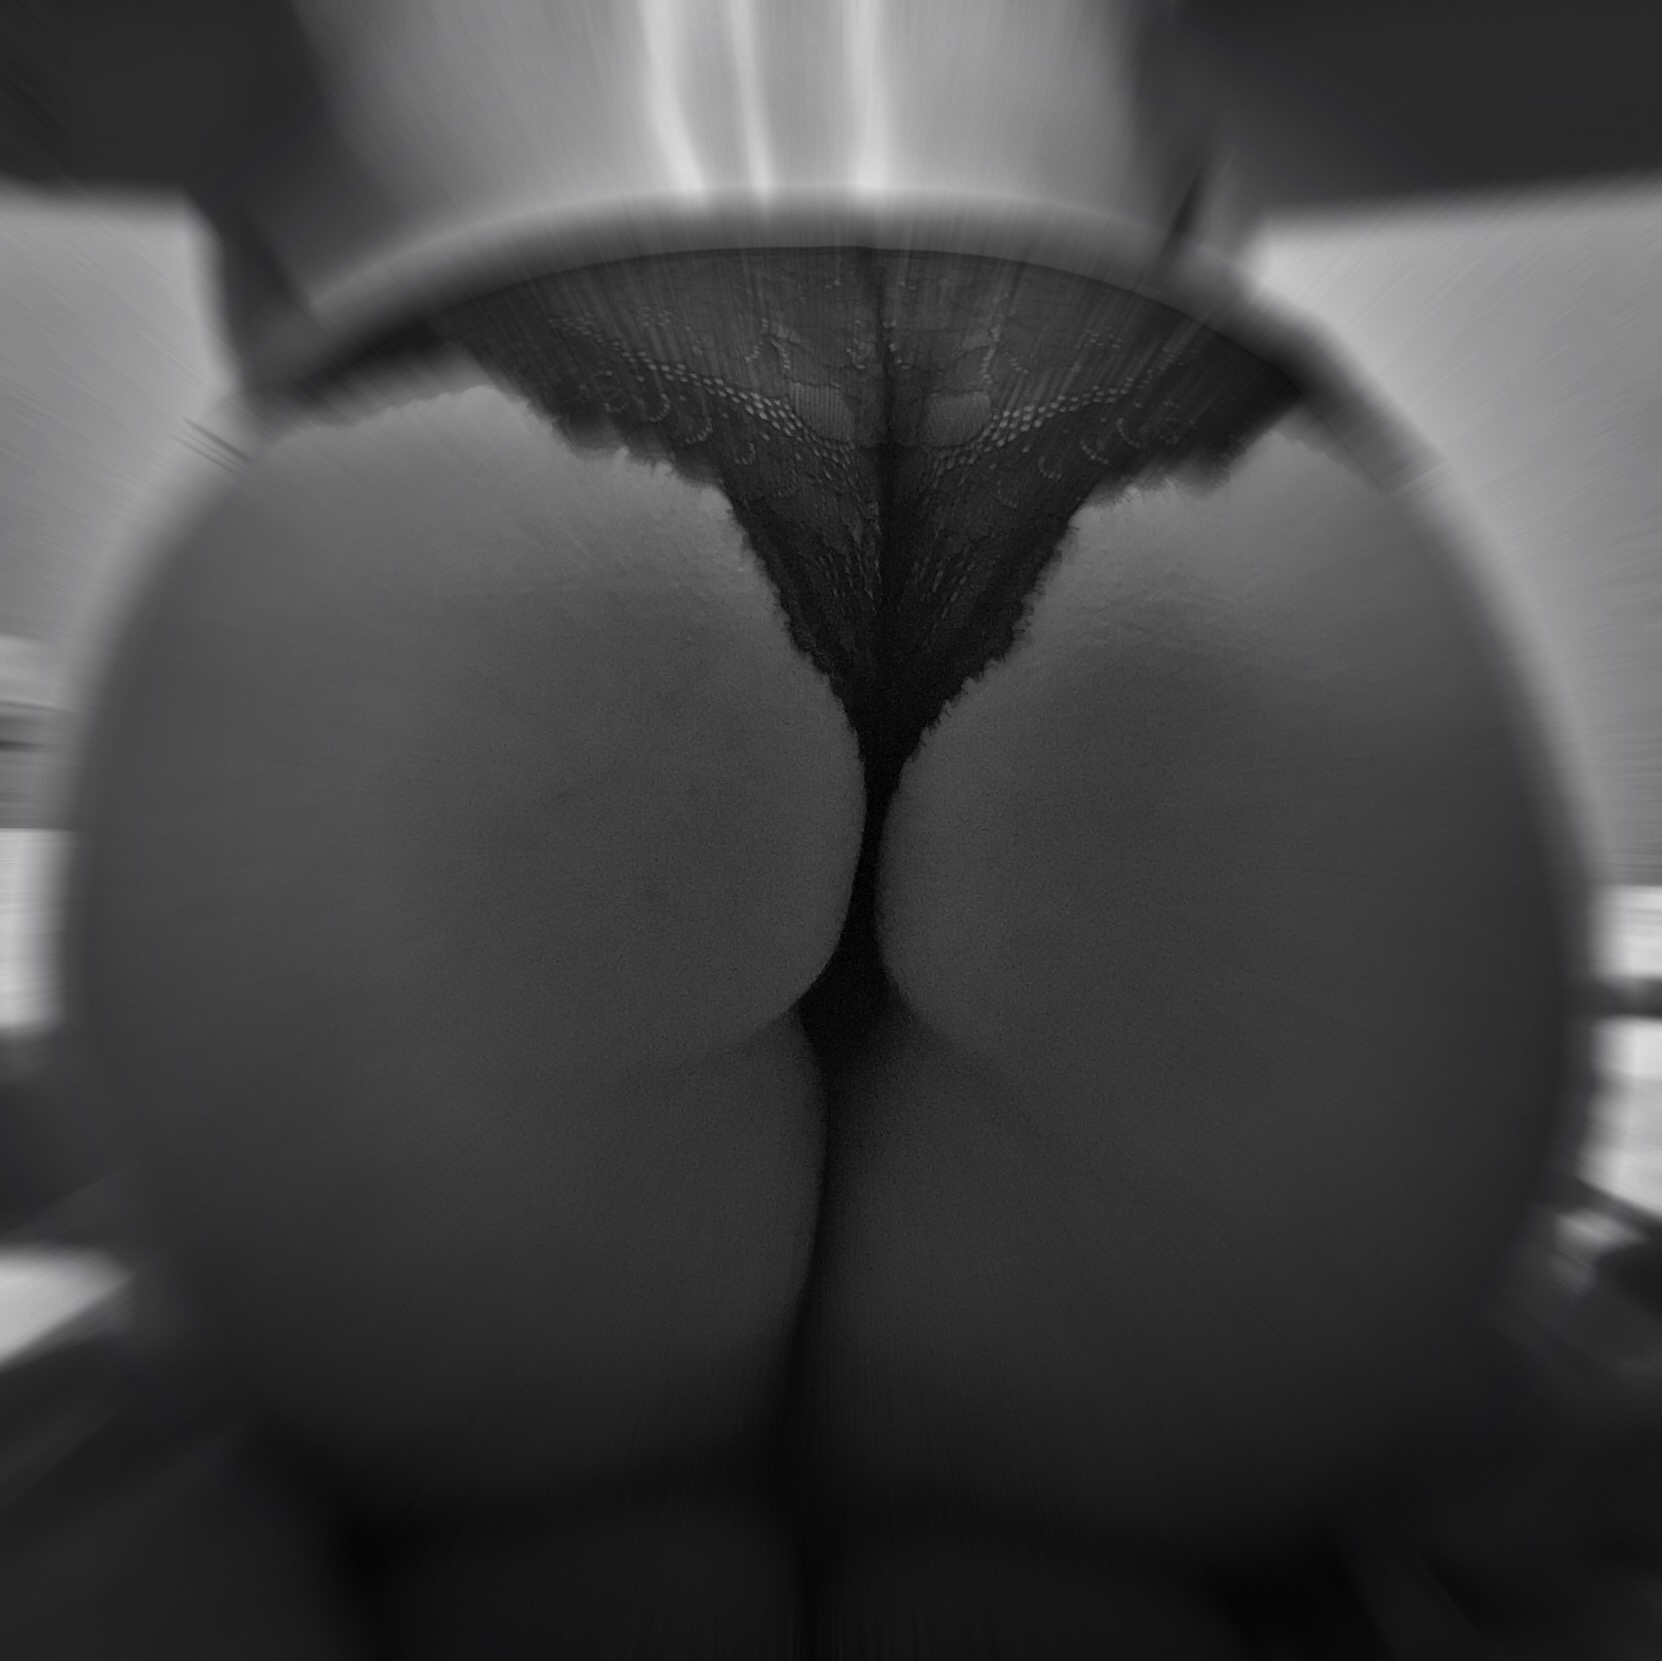 A photo of my arse as I bend over a bed in black and white, wearing lacy pants